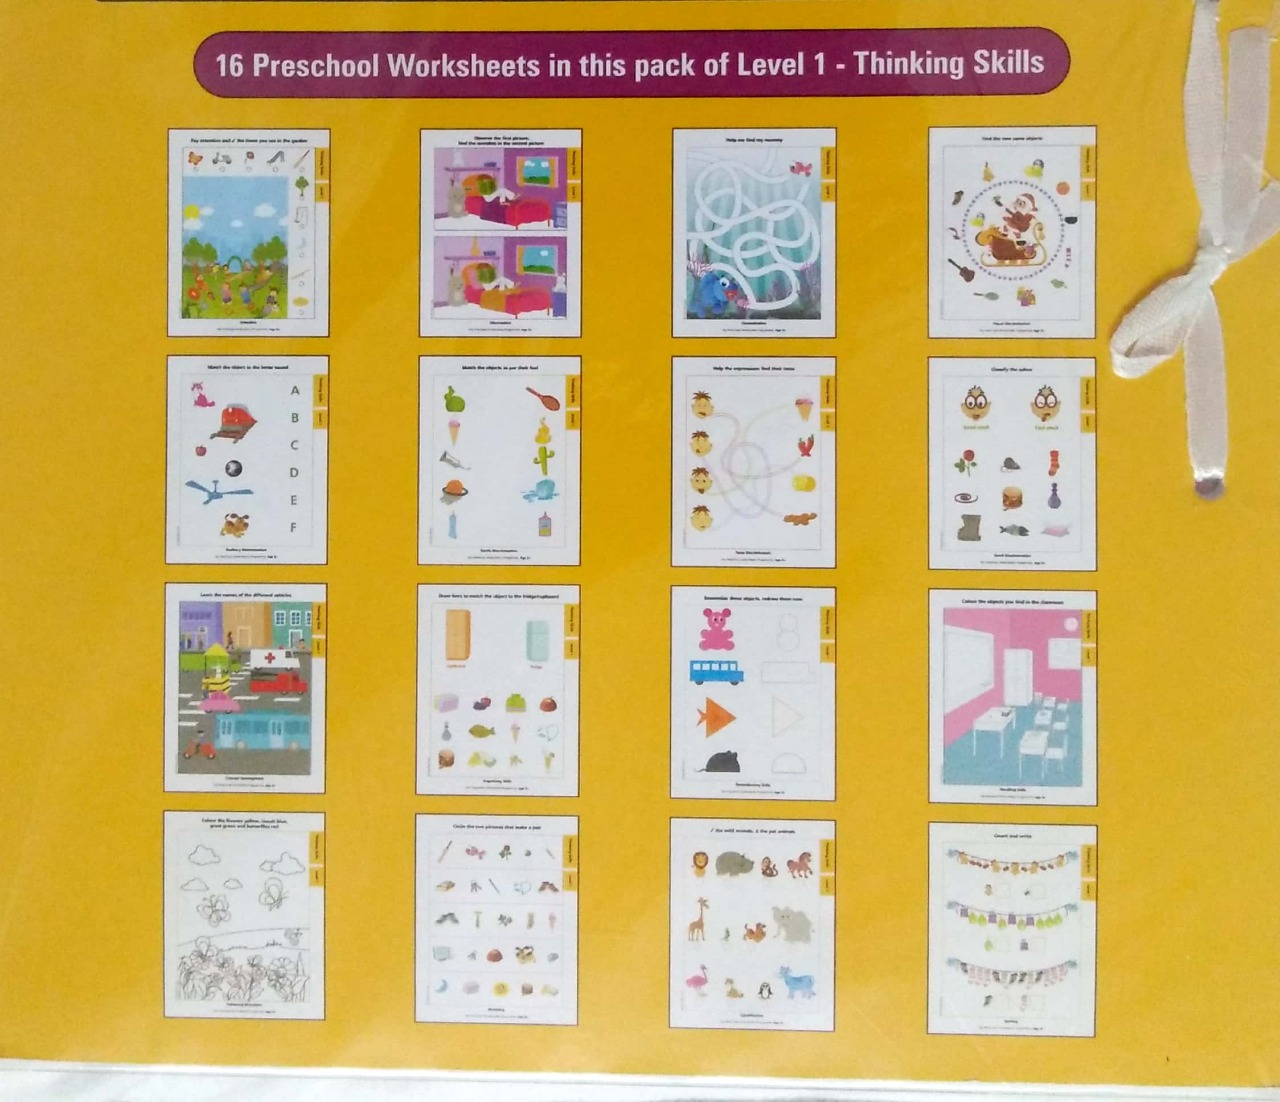 My Preschool Worksheets Thinking Skill Level 1 (Age3+)